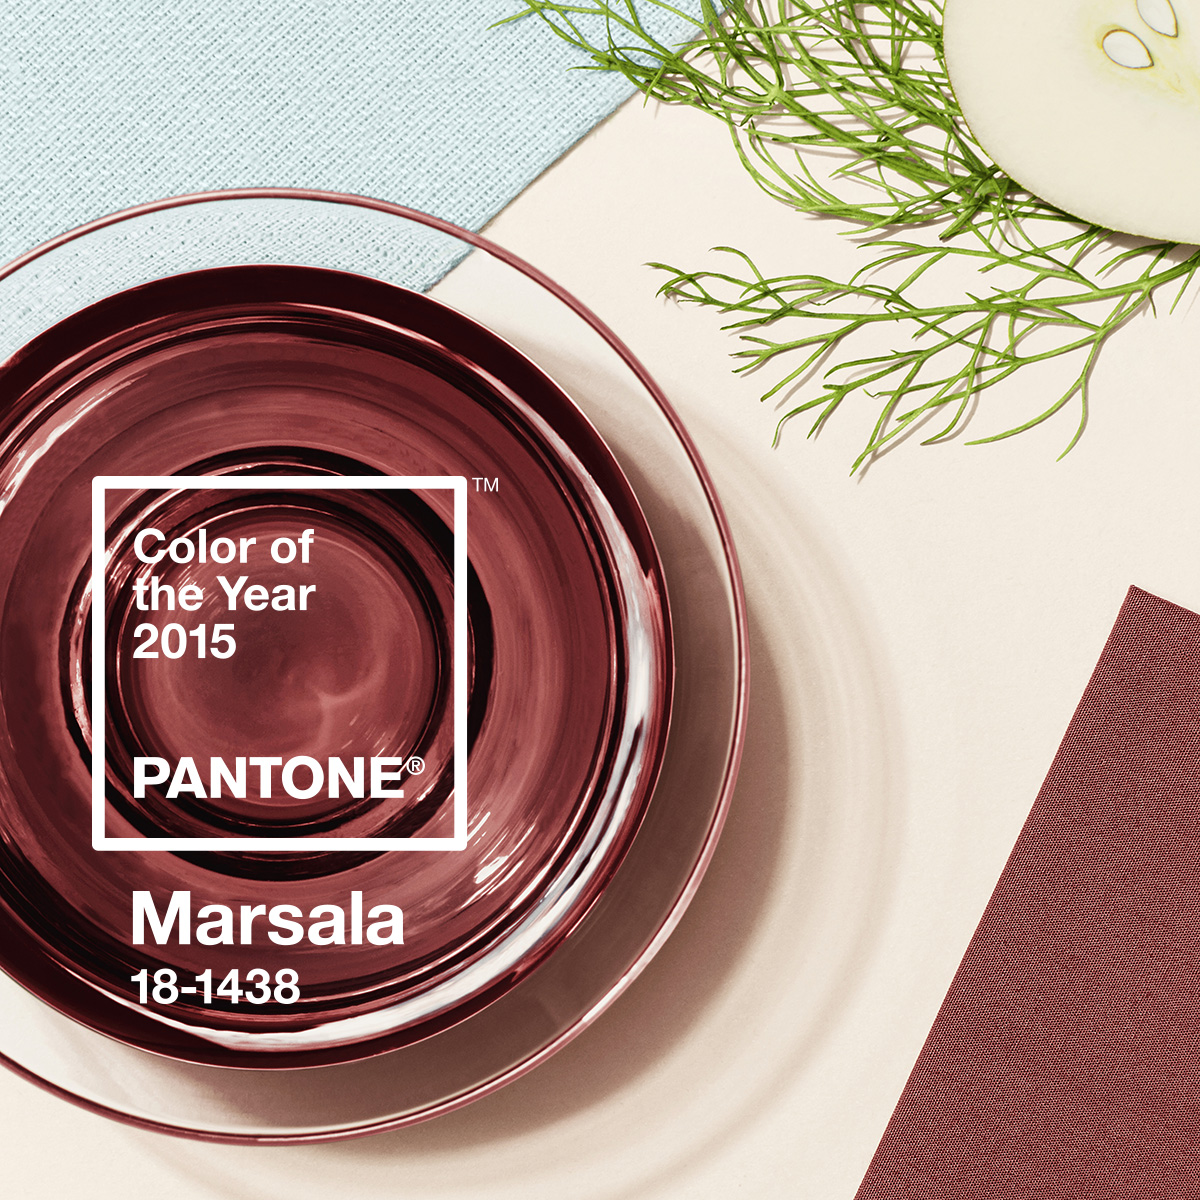 Are You Ready for Pantone Color of the Year 2018? Here's a Recap! pantone color of the year 2018 Are You Ready for Pantone Color of the Year 2018? Here's a Recap! Pantone Color of the Year a Quick Recap Before the Big Announcement 4